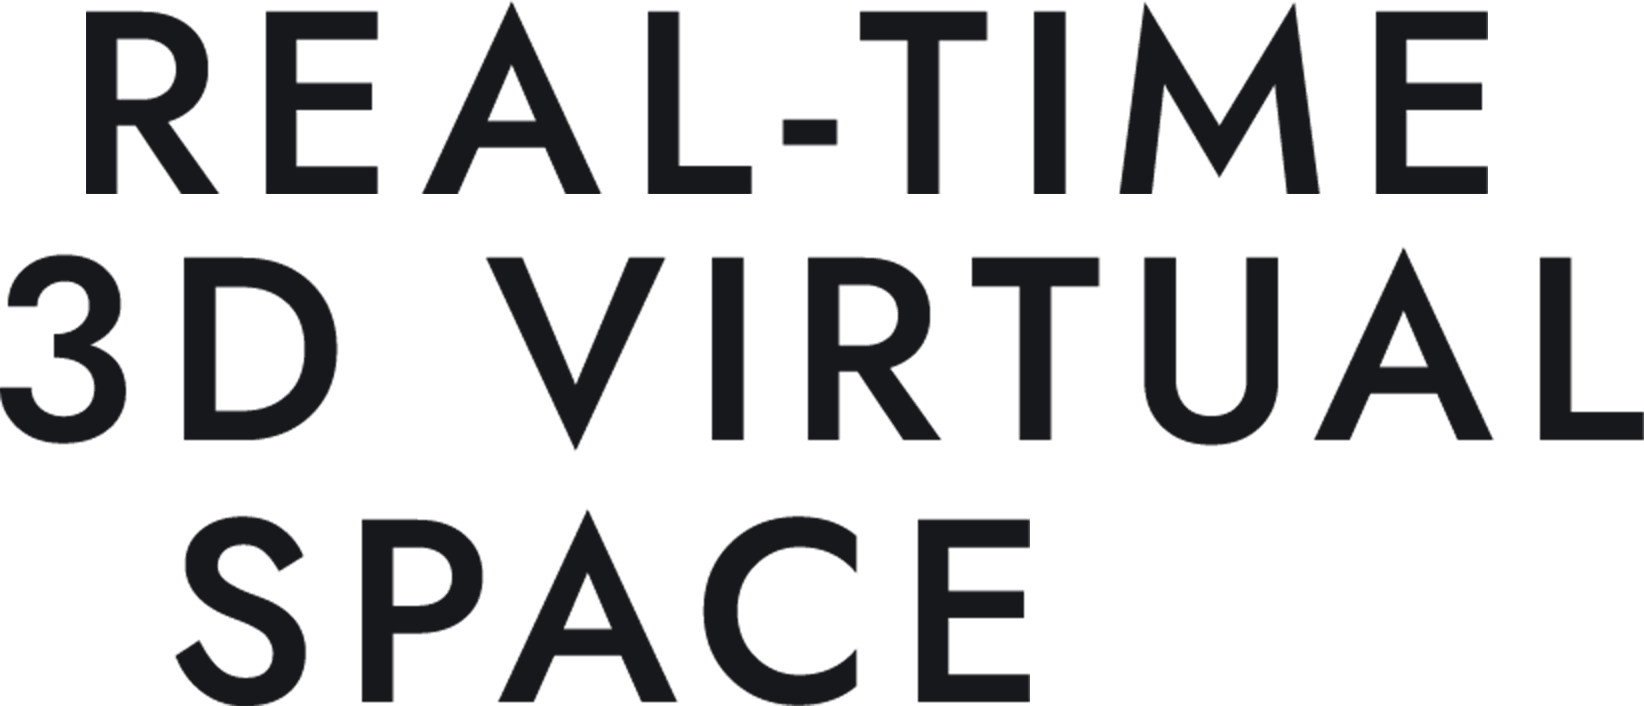 REAL-TIME 3D VIRTUAL SPACE